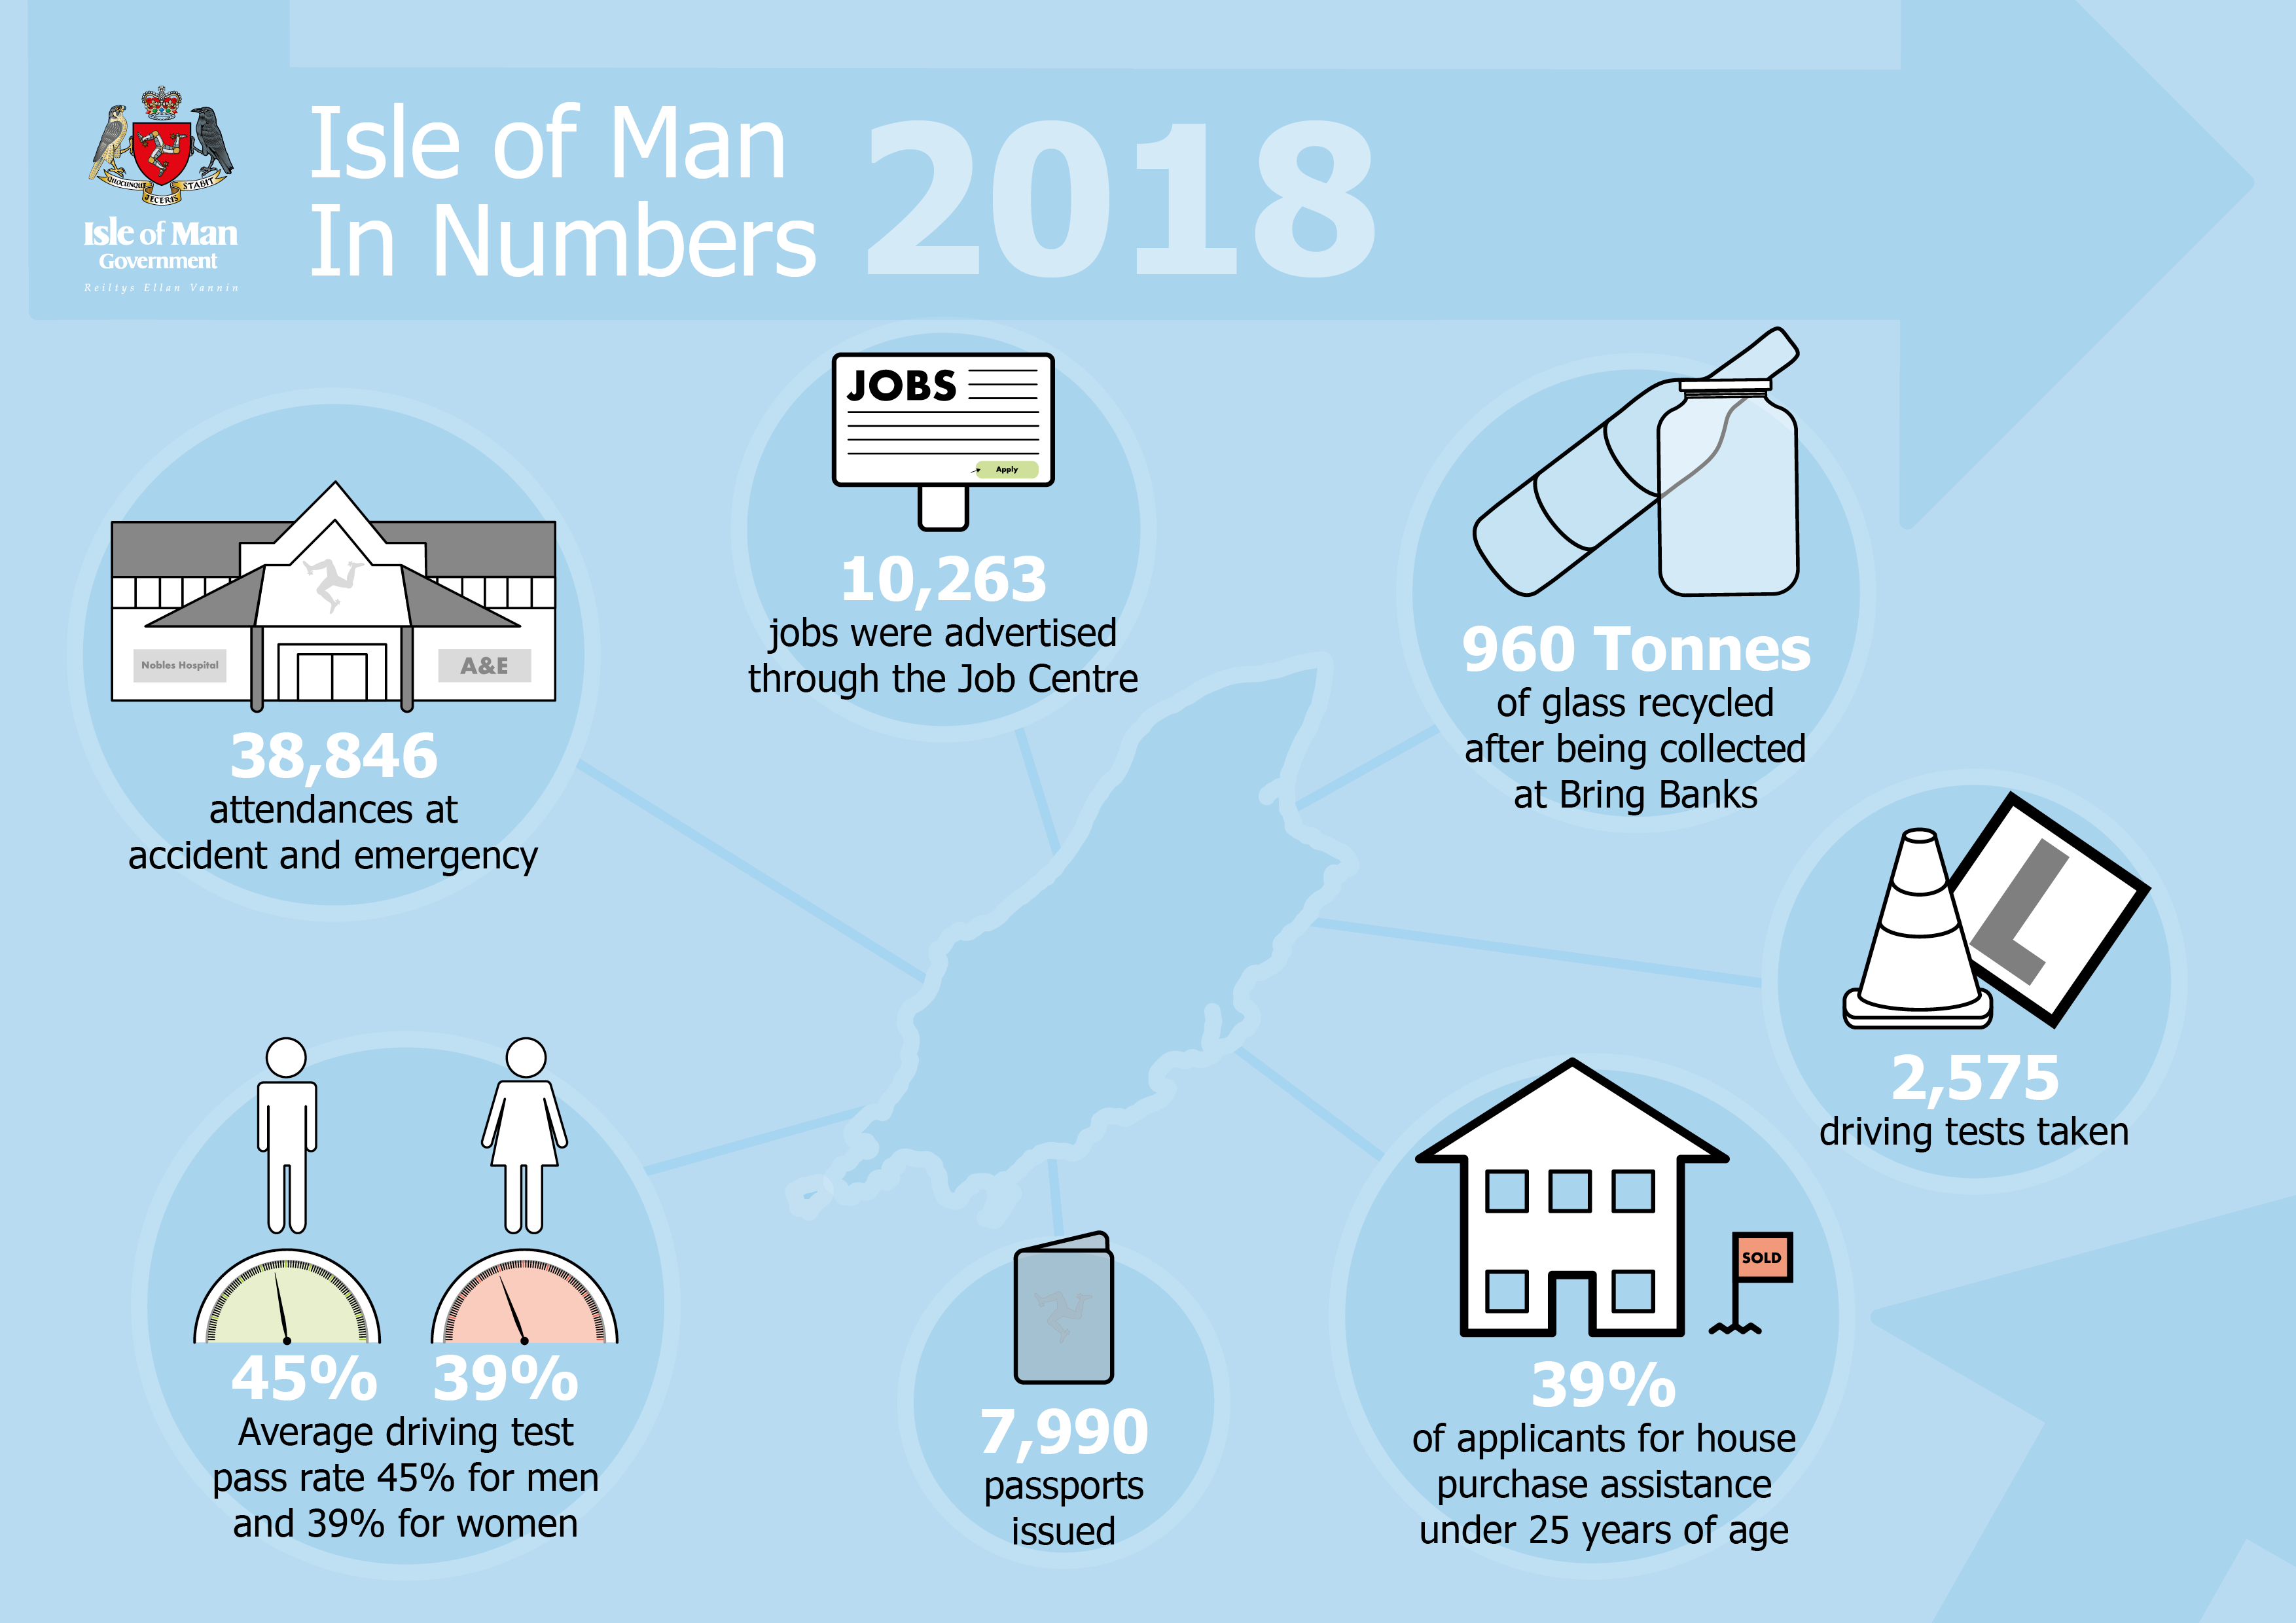 Isle of Man in Numbers 2018 - Infographic